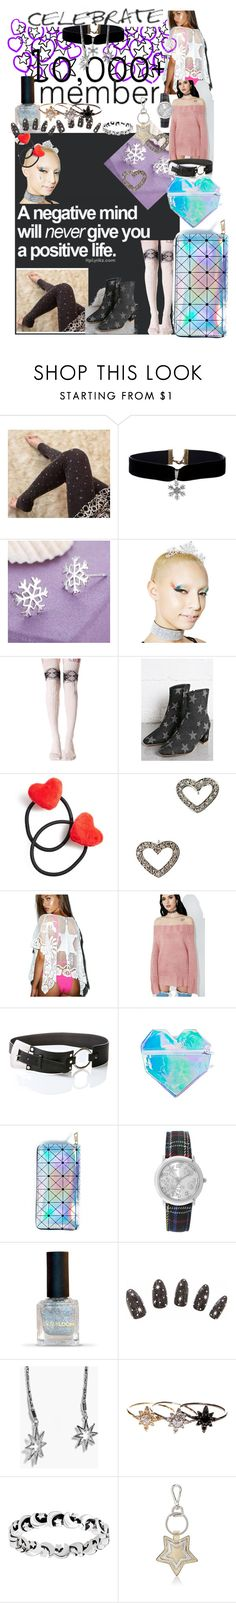 """""""Life is funny"""" by lerp ❤ liked on Polyvore featuring Little Flower, Ana Accessories, Cape Robbin, Ponytail Pals, Wildfox, Ecru Lab, ESQAPE, Mixit, Boohoo and Free Press"""